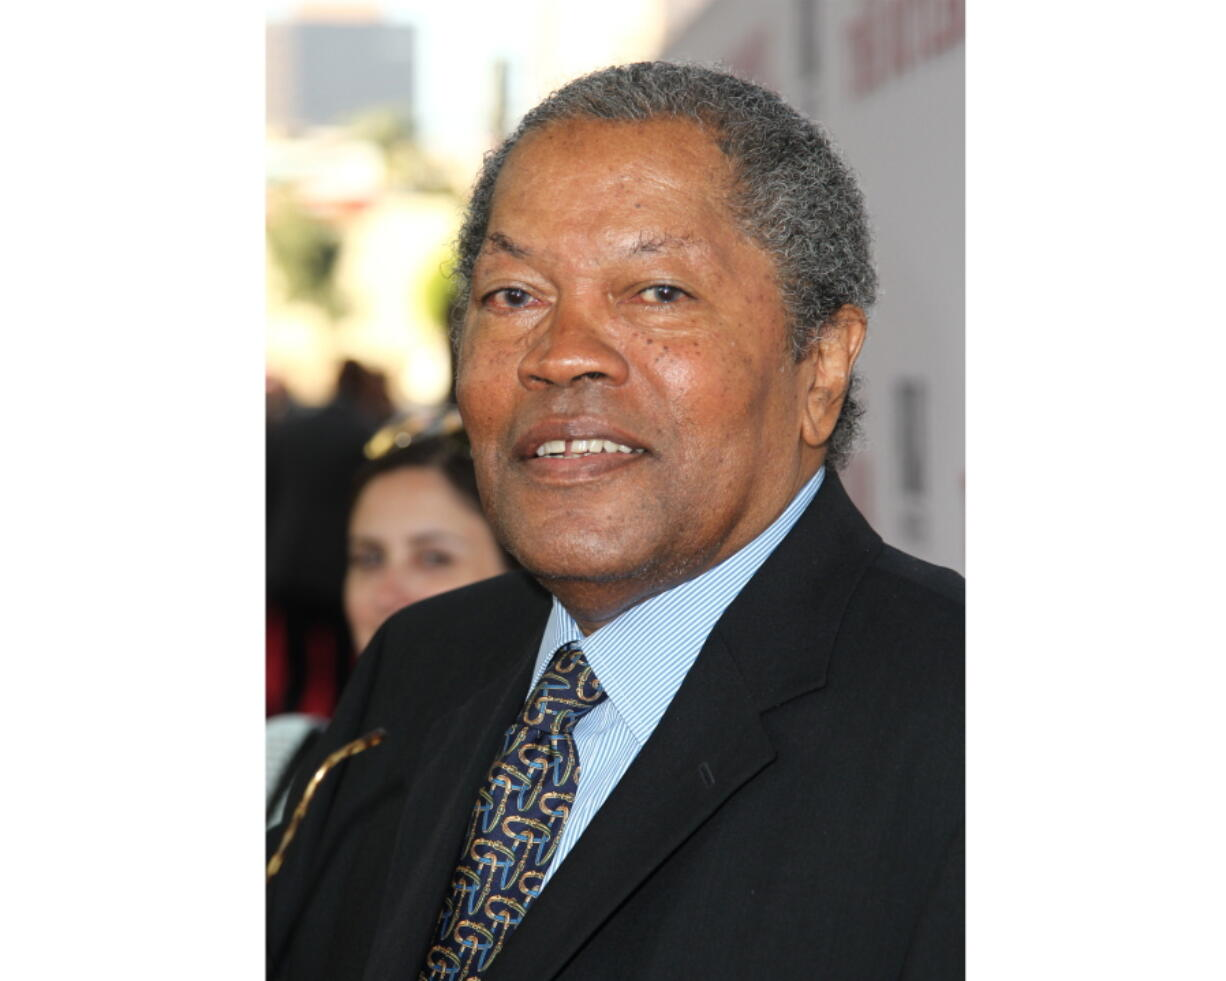 """FILE - In this Aug. 12, 2013 file photo, Clarence Williams III arrives at the Los Angeles premiere of """"Lee Daniels' The Butler"""" at the Regal Cinemas L.A. Live Stadium. Williams died Friday at his home in Los Angeles after a battle with colon cancer, his manager Allan Mindel said Sunday, June 6, 2021. He was 81."""